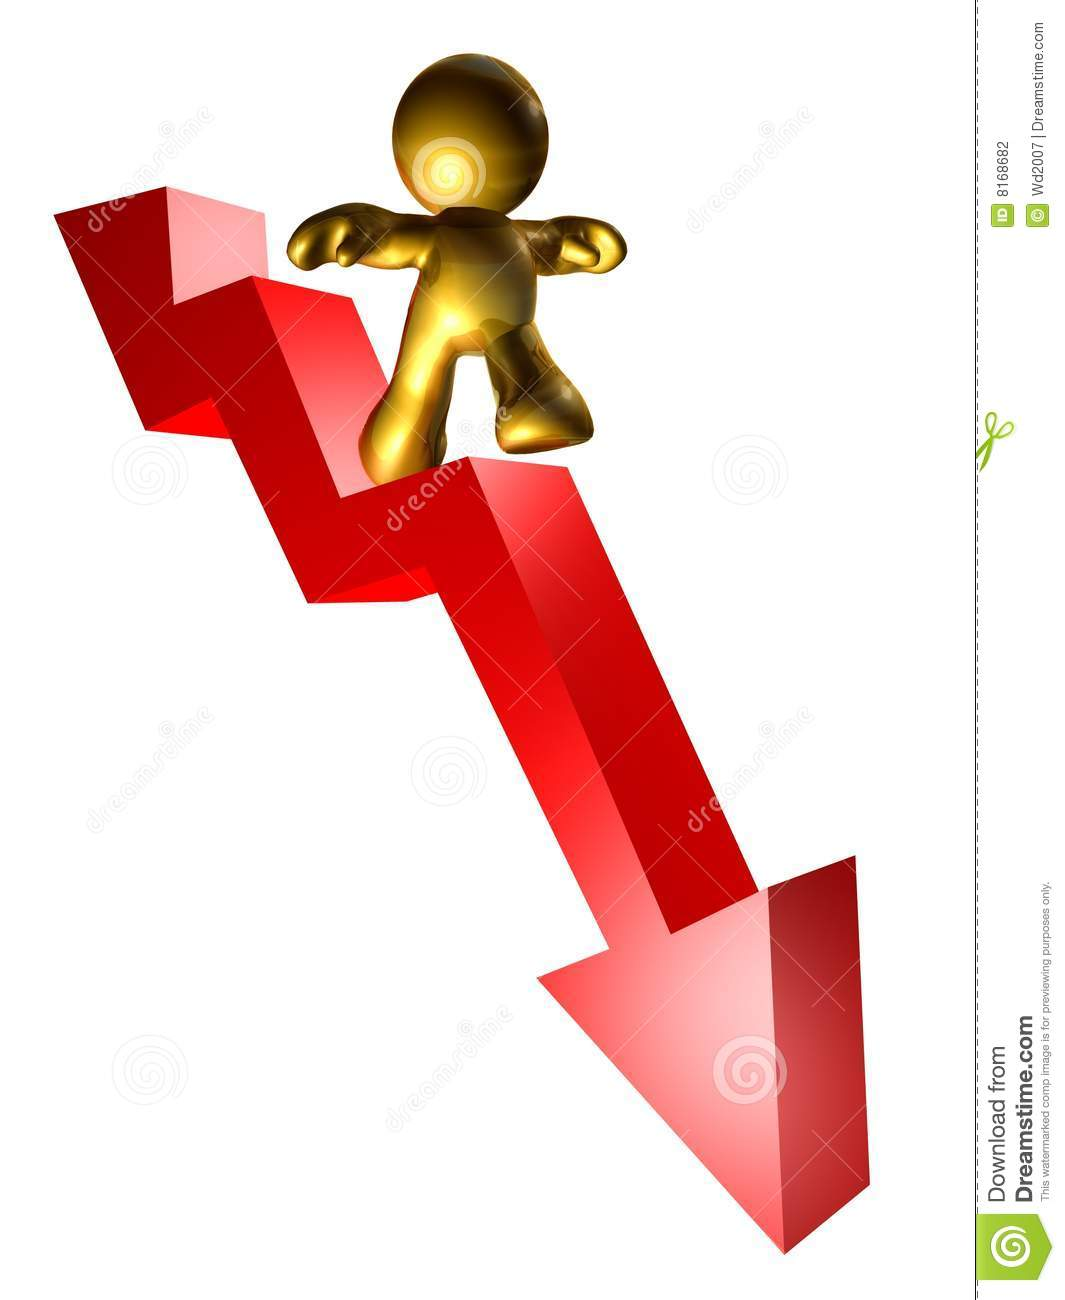 Riding The Down Trend Arrow Stock Photography - Image: 8168682